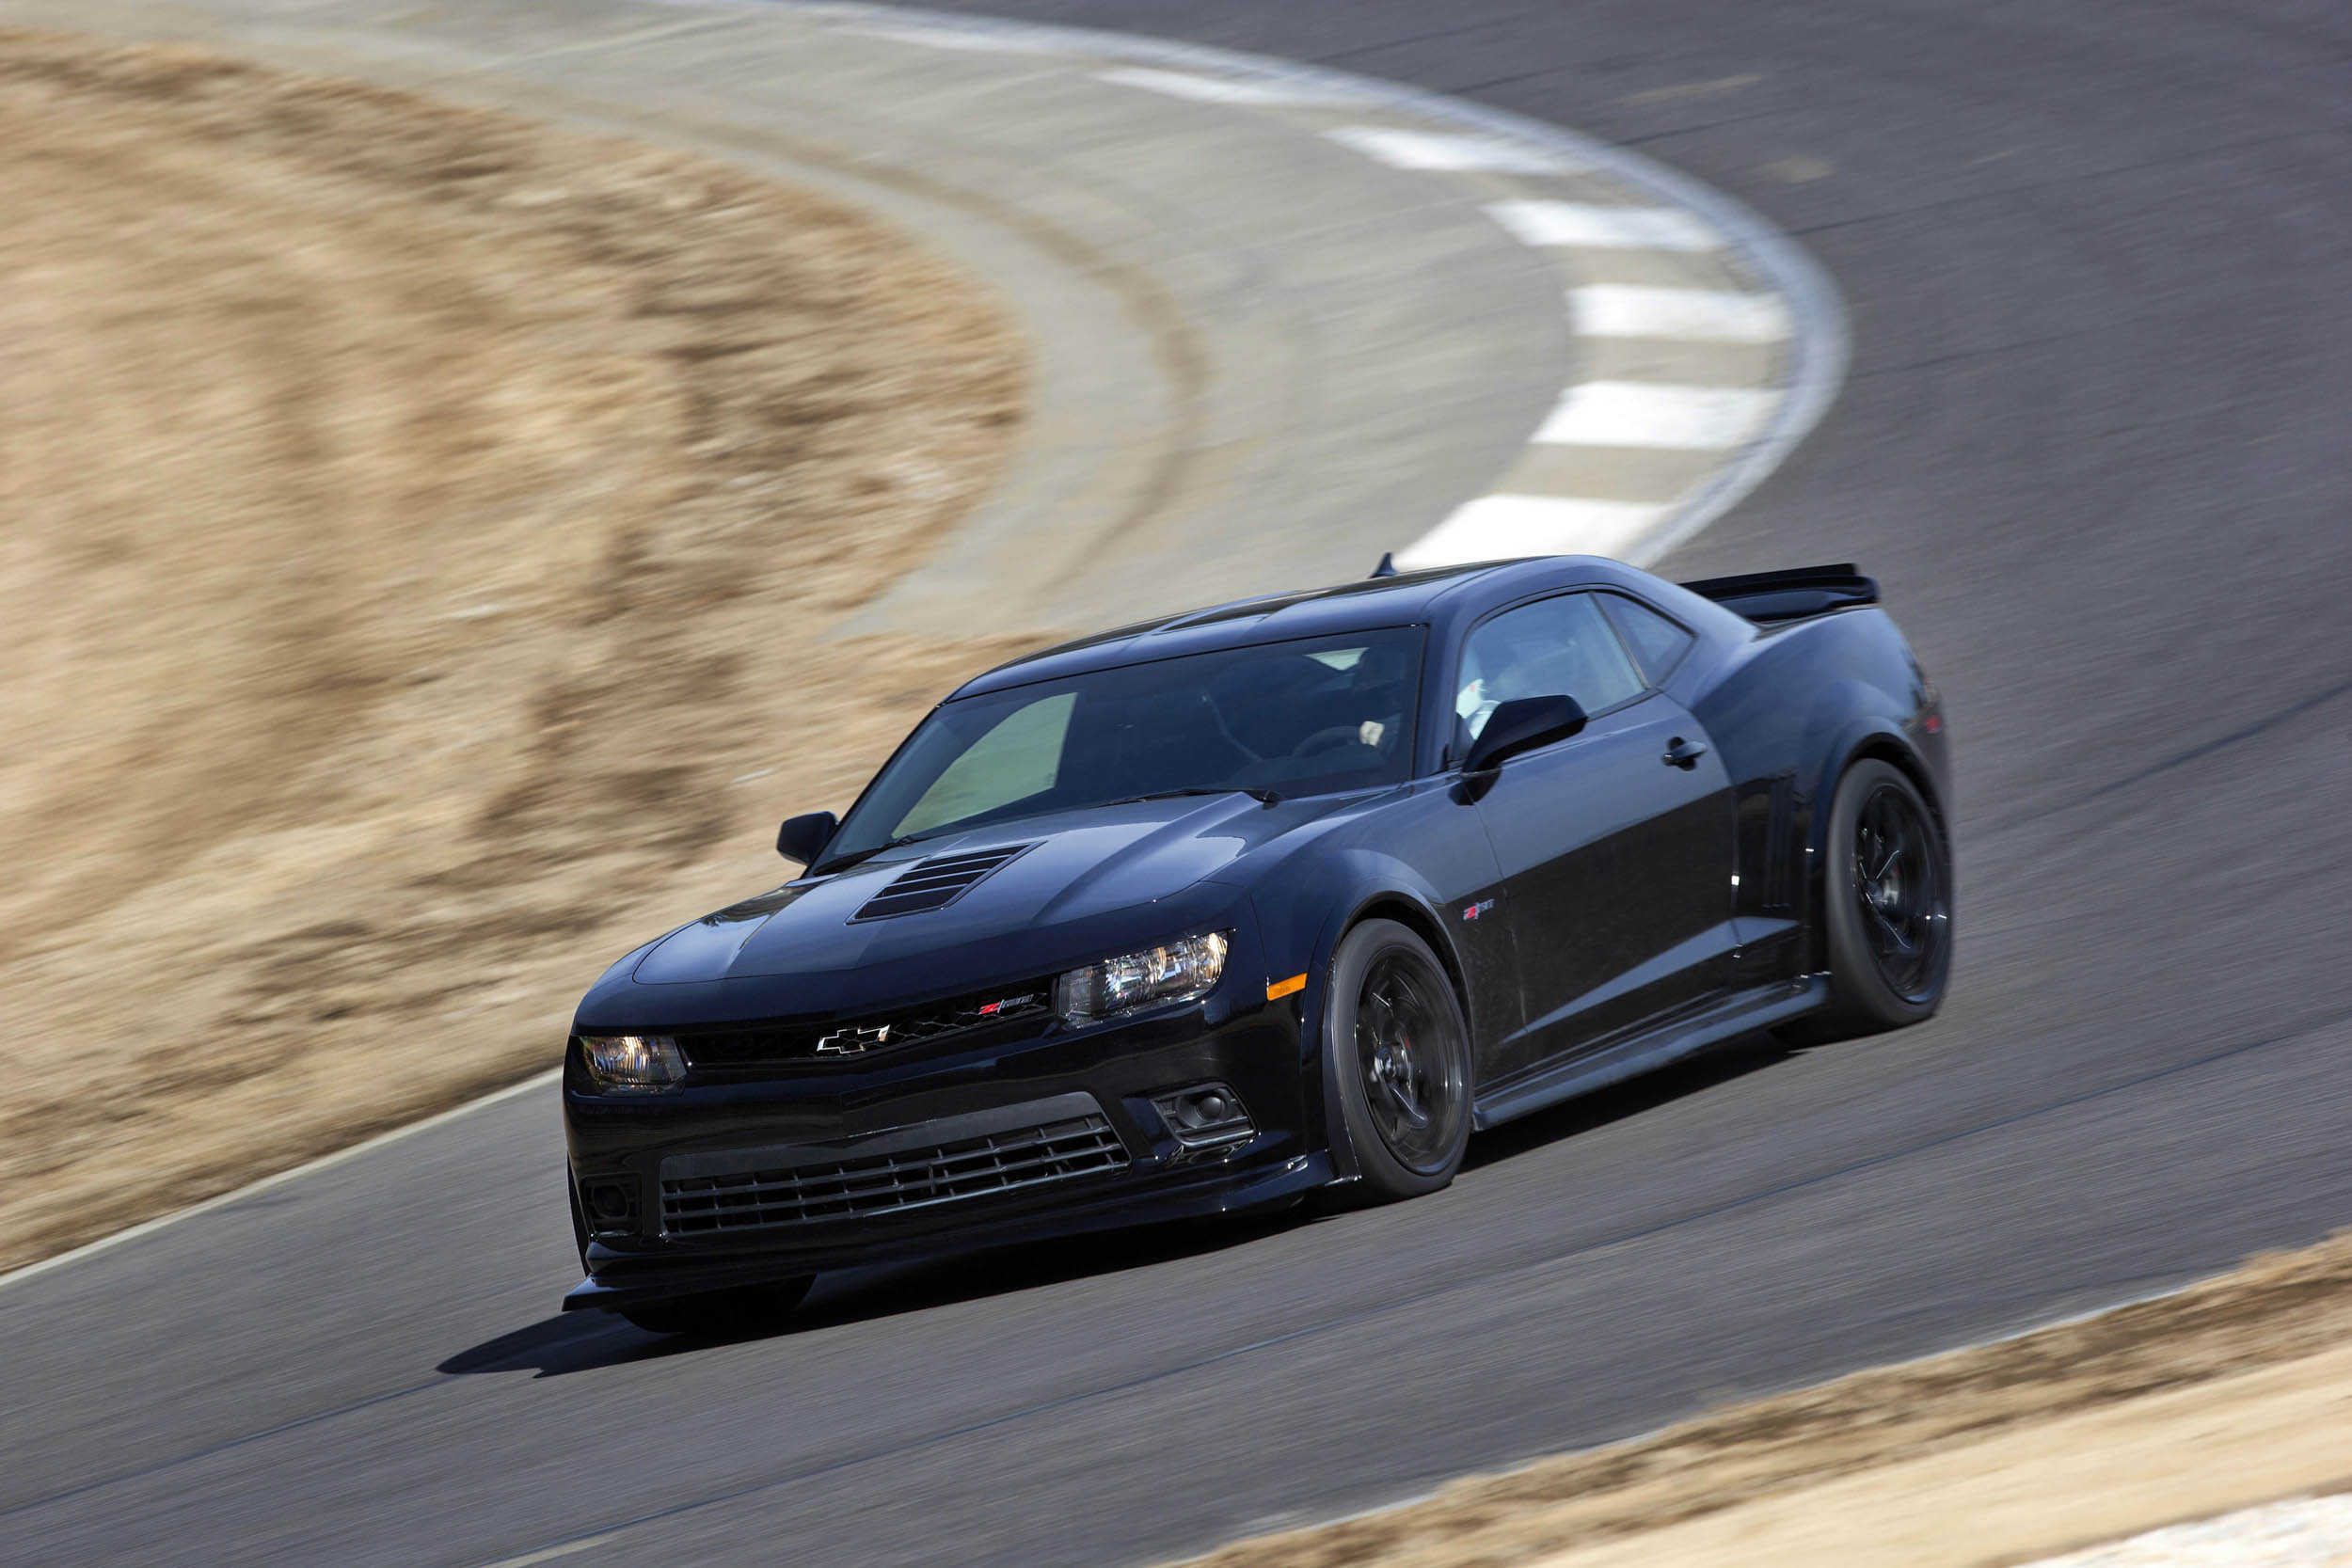 2015 Chevrolet Camaro Z/28 front 3/4 on the track